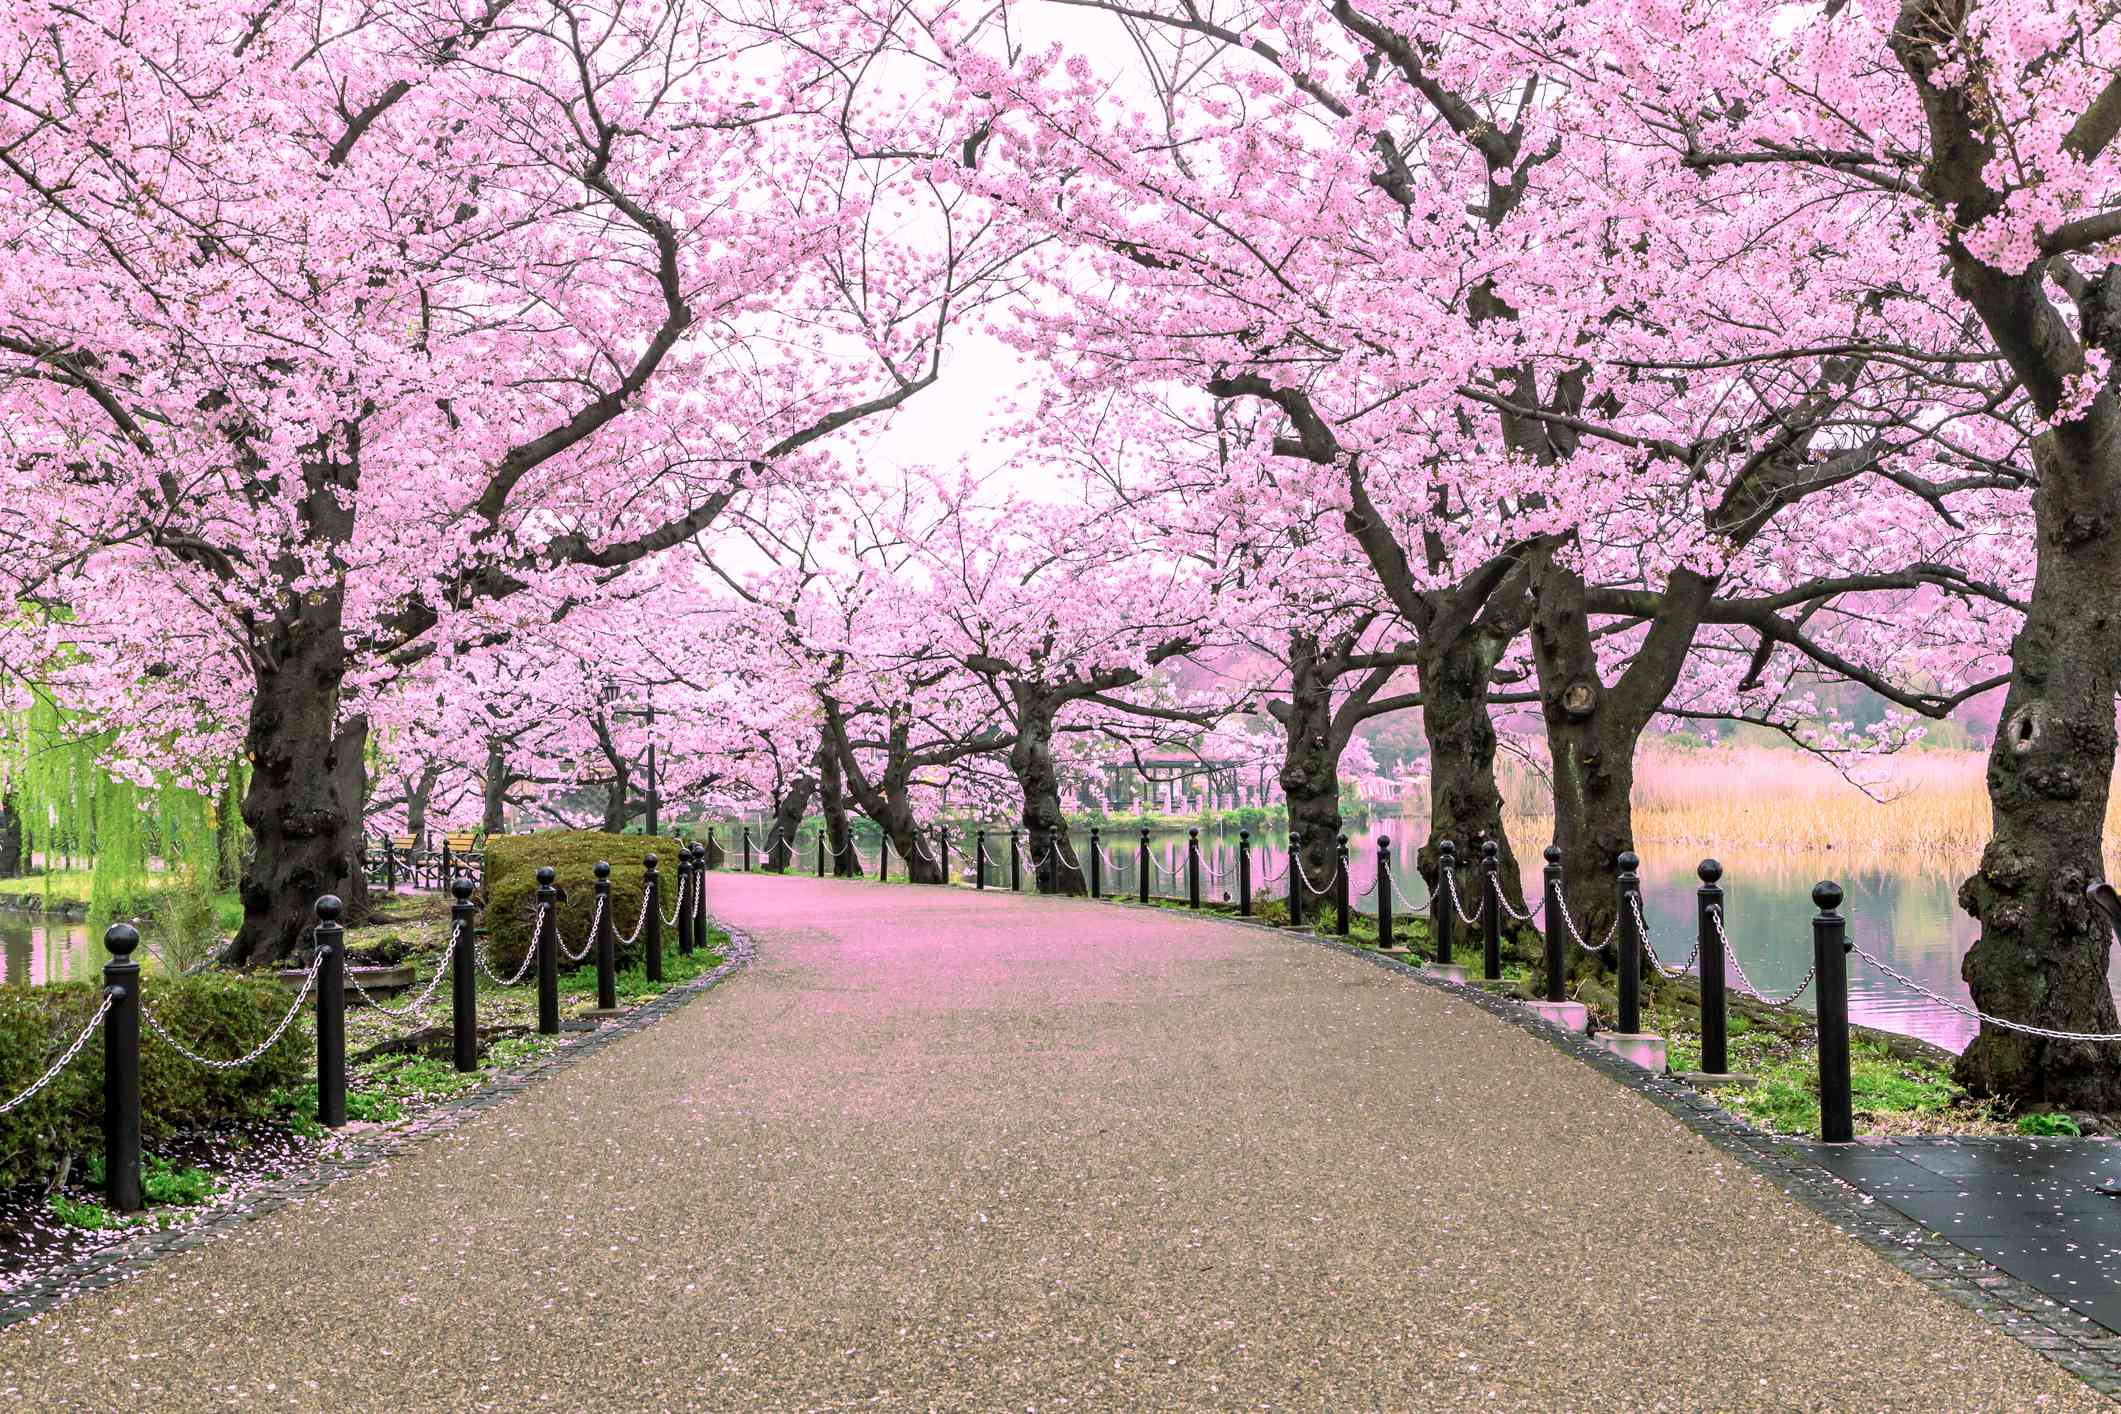 Walking path under a series of cherry blossoms in full bloom with petals on the pathway in Ueno Park, Tokyo